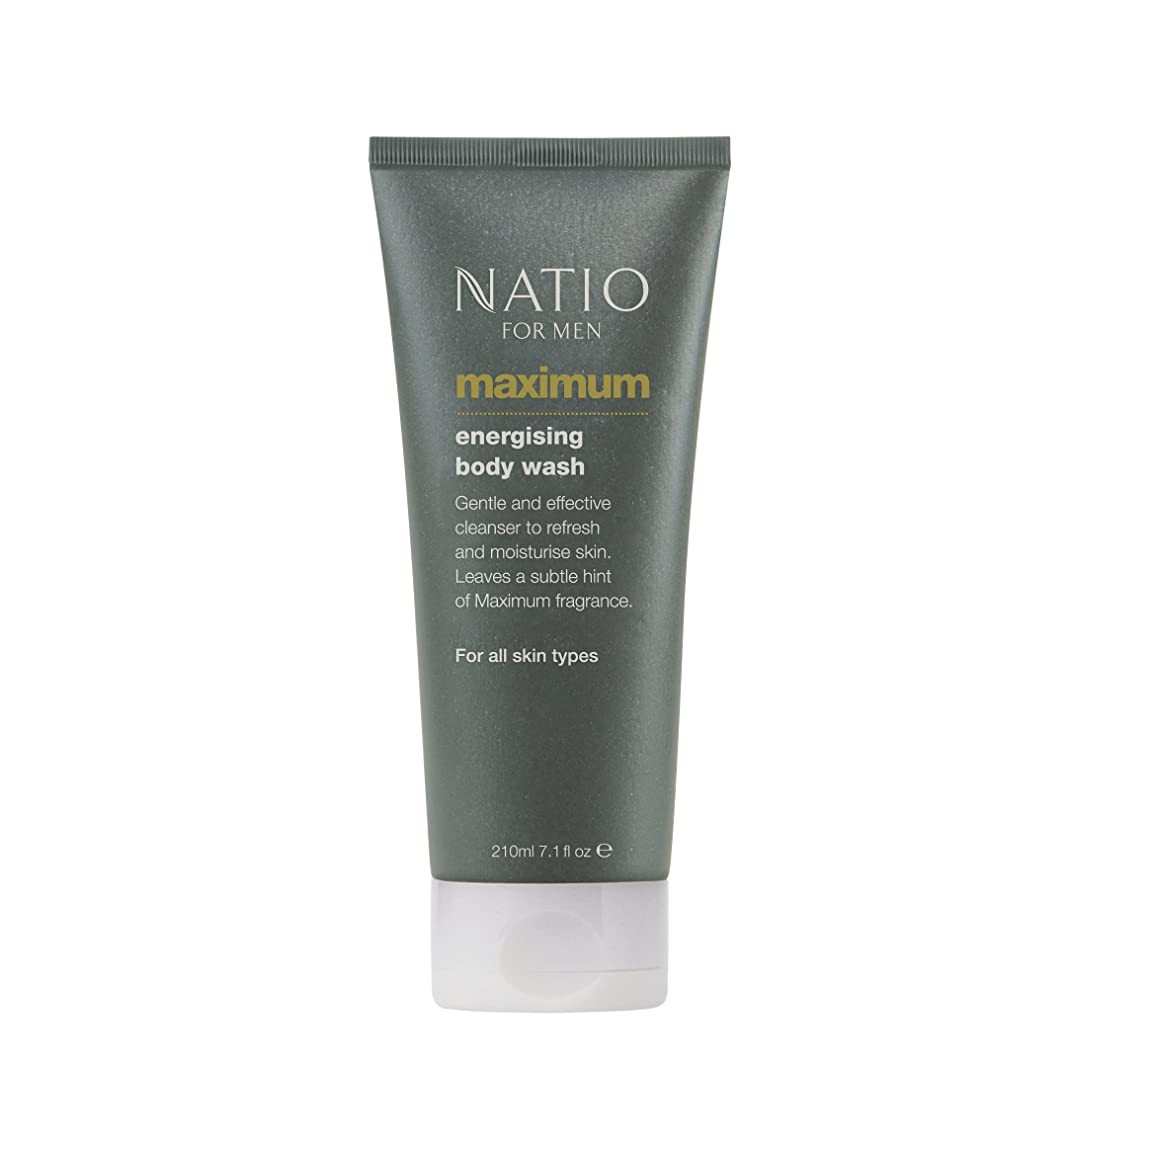 指標椅子十分ですNatio Men's Maximum Energising Body Wash 210ml